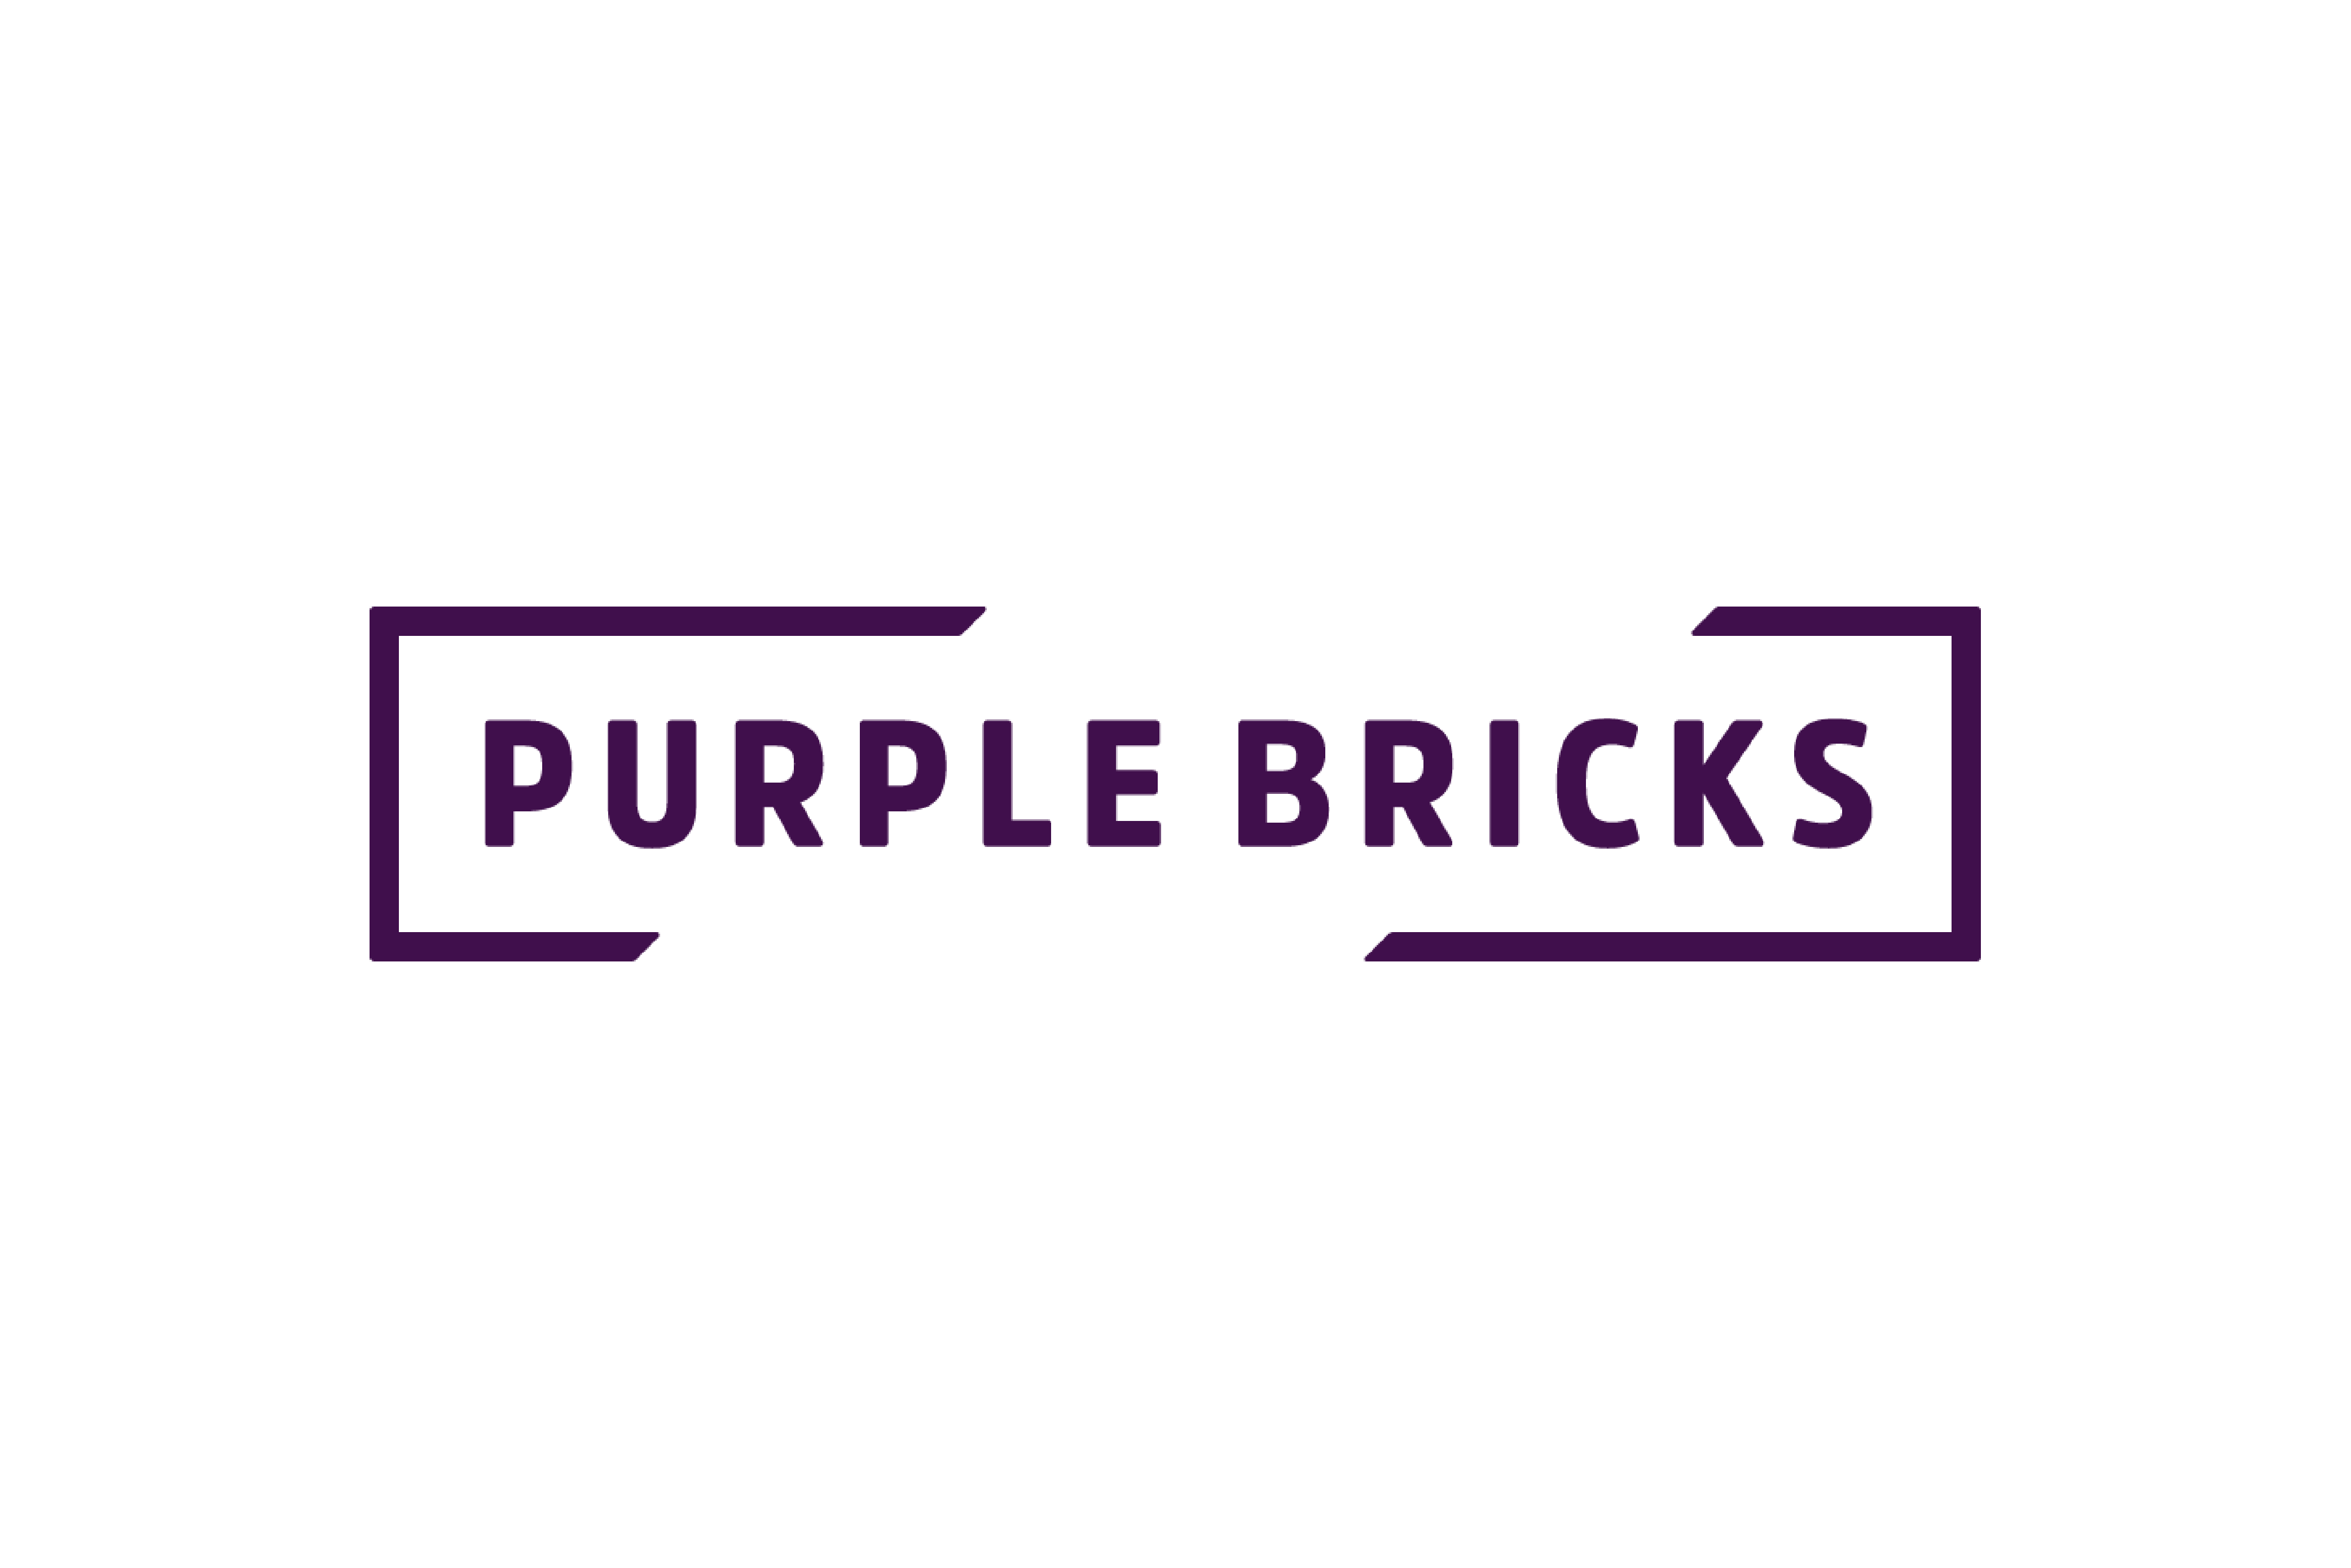 purple bricks logo